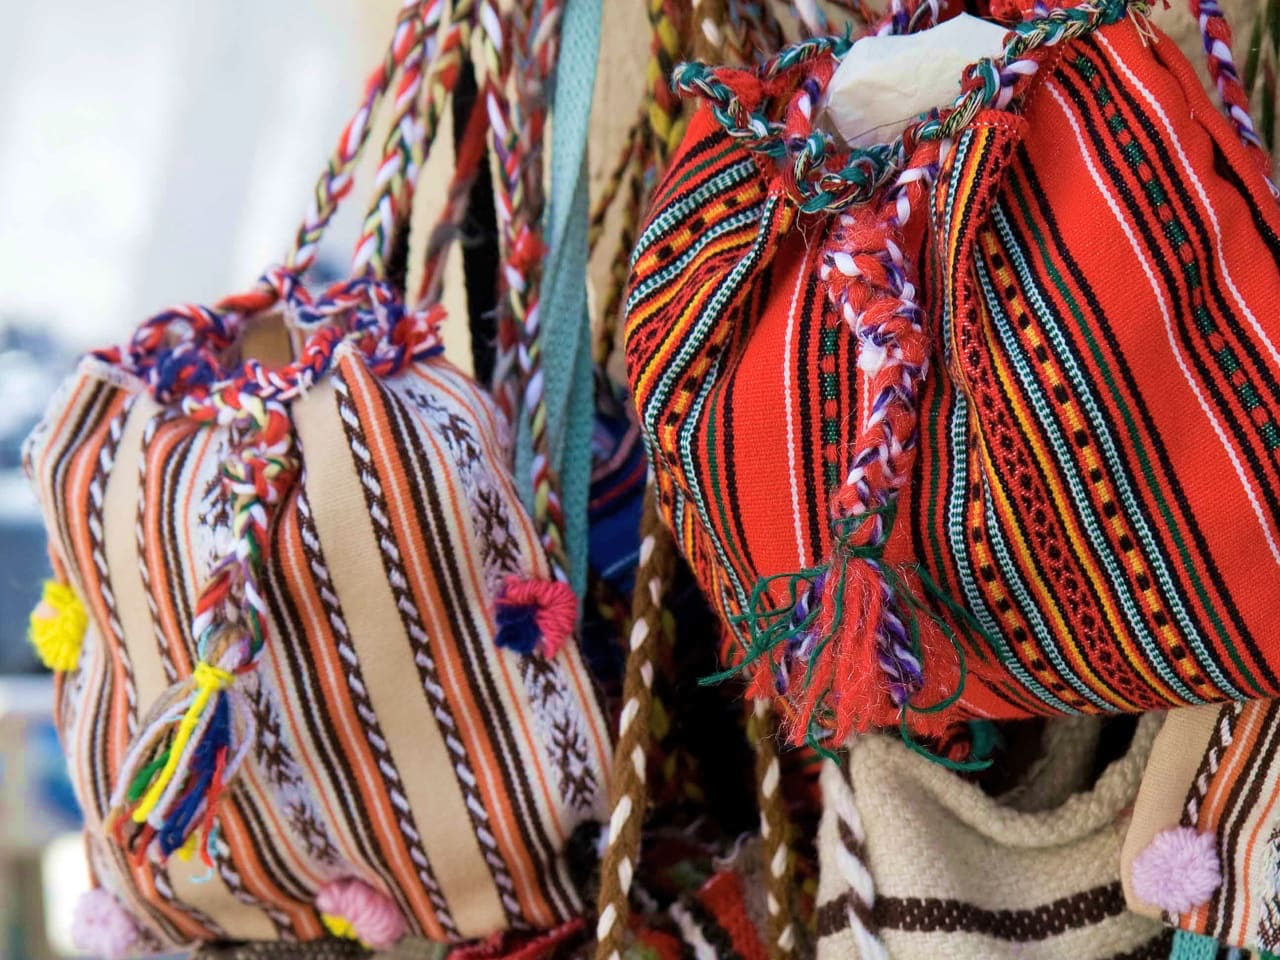 Handicraft bags in Anogia Village, Rethimno, Crete, anogia village travel guide, anogia village things to do, anogia gastronomy, anogia village music